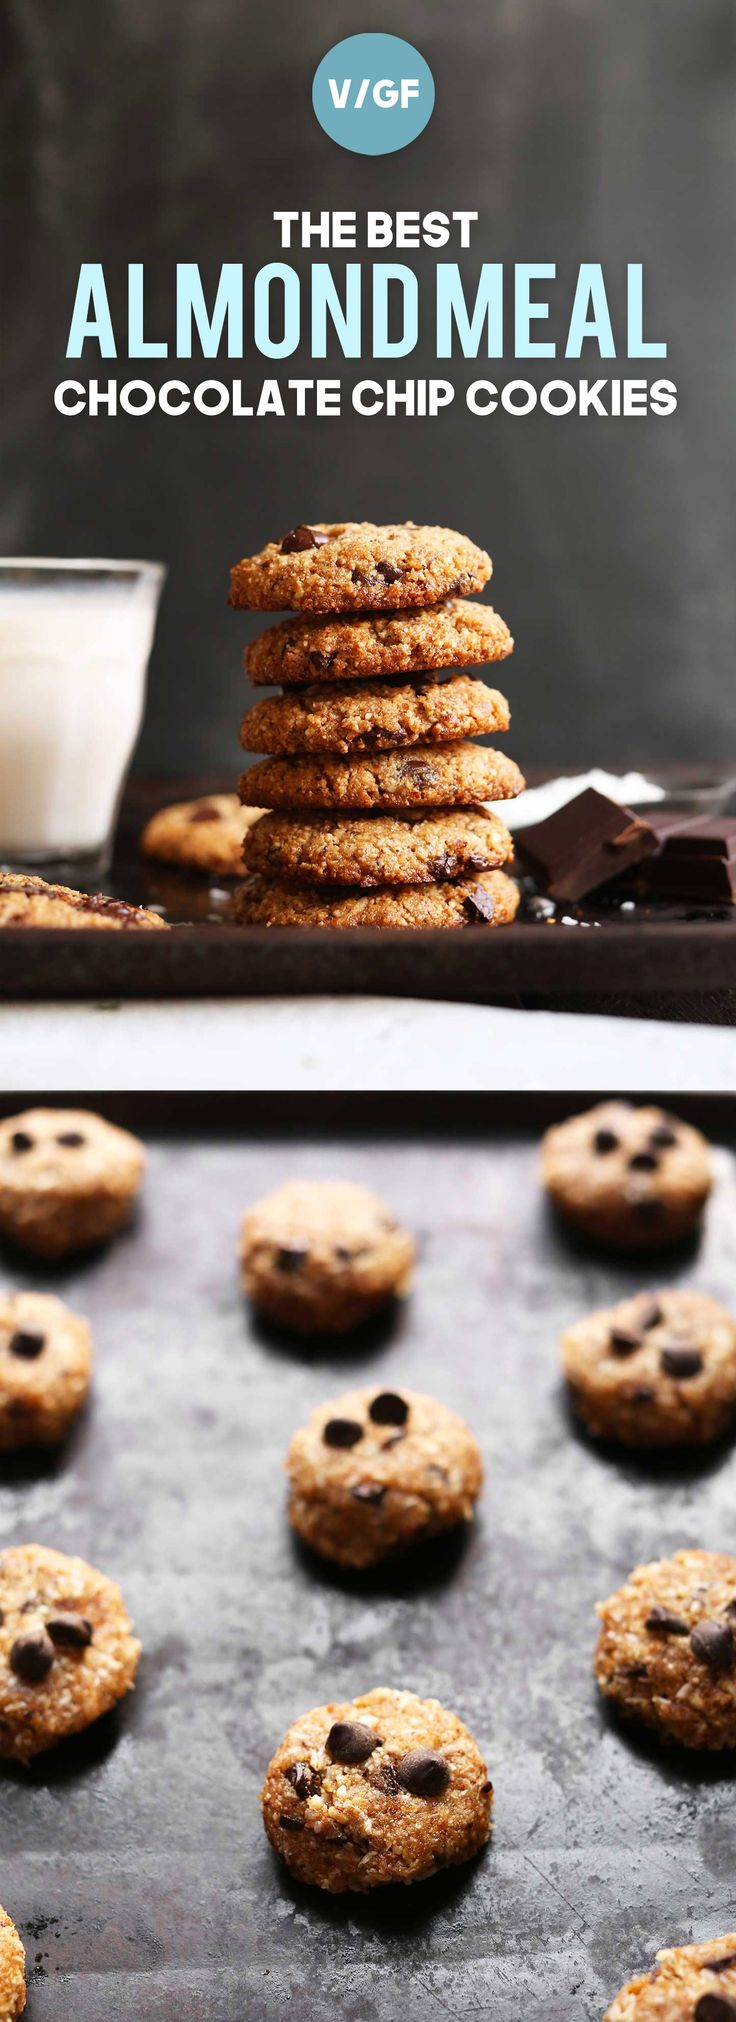 The best almond meal cookies made with 9 ingredients! Crispy on the outside, chewy on the inside, super chocolaty! A delicious vegan, gluten-free dessert!